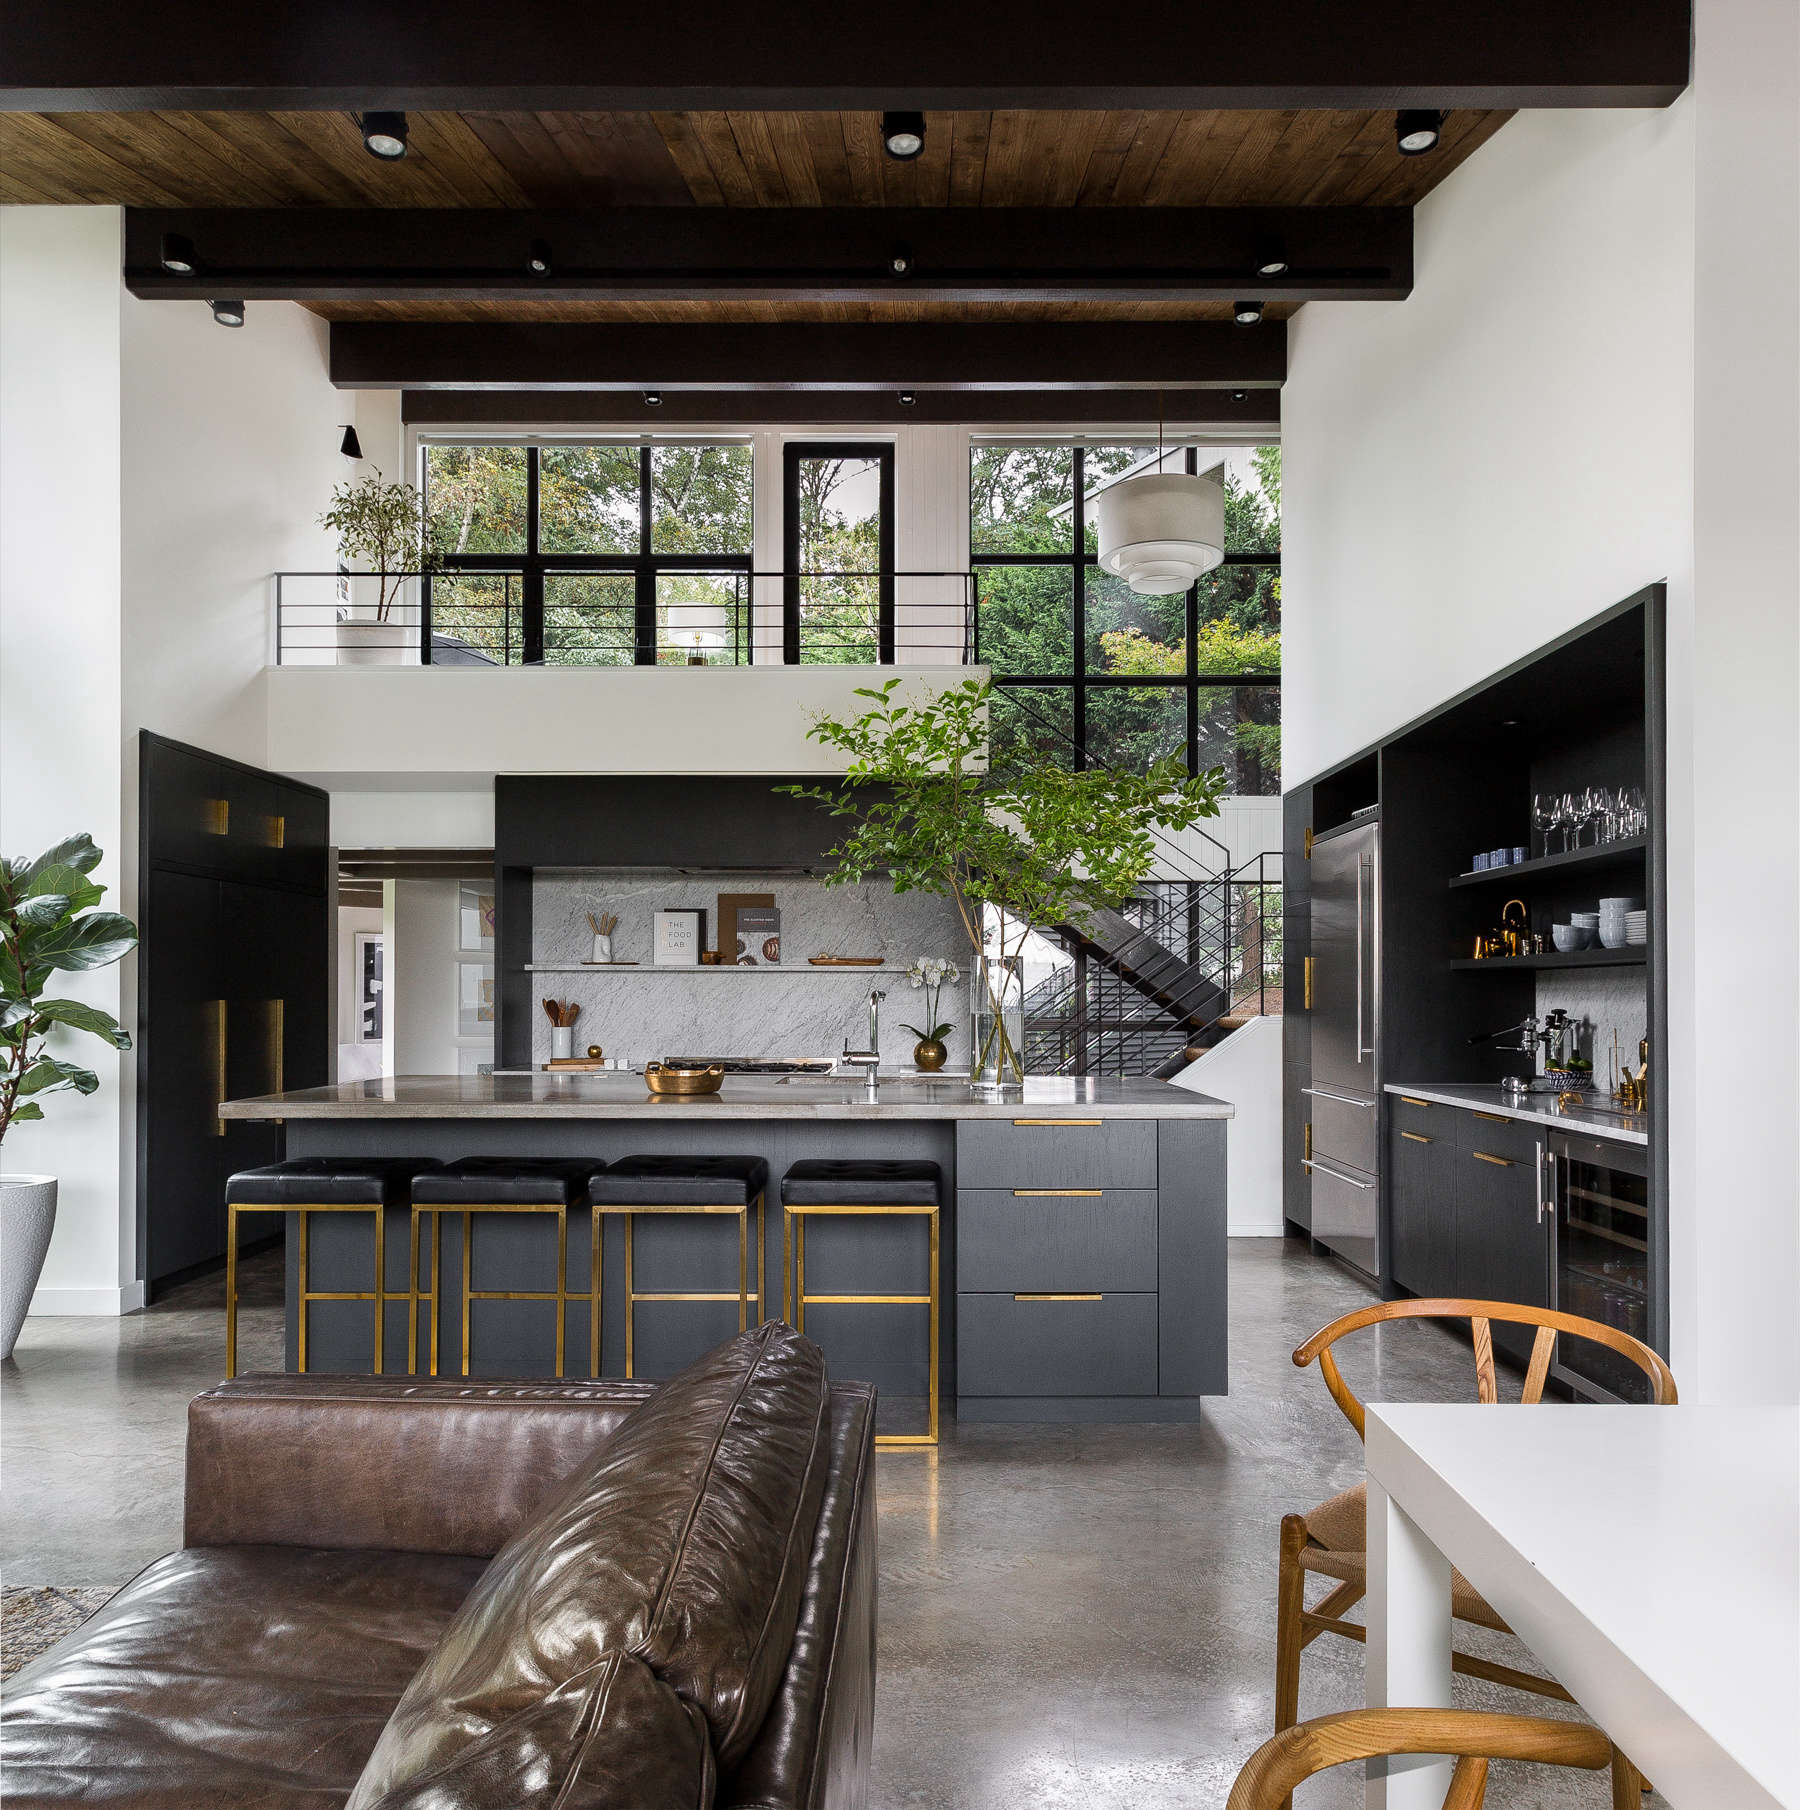 Best Professional Kitchen: Montlake Residence by Mowery Marsh Architects and Kaylen Flugel Design - Remodelista